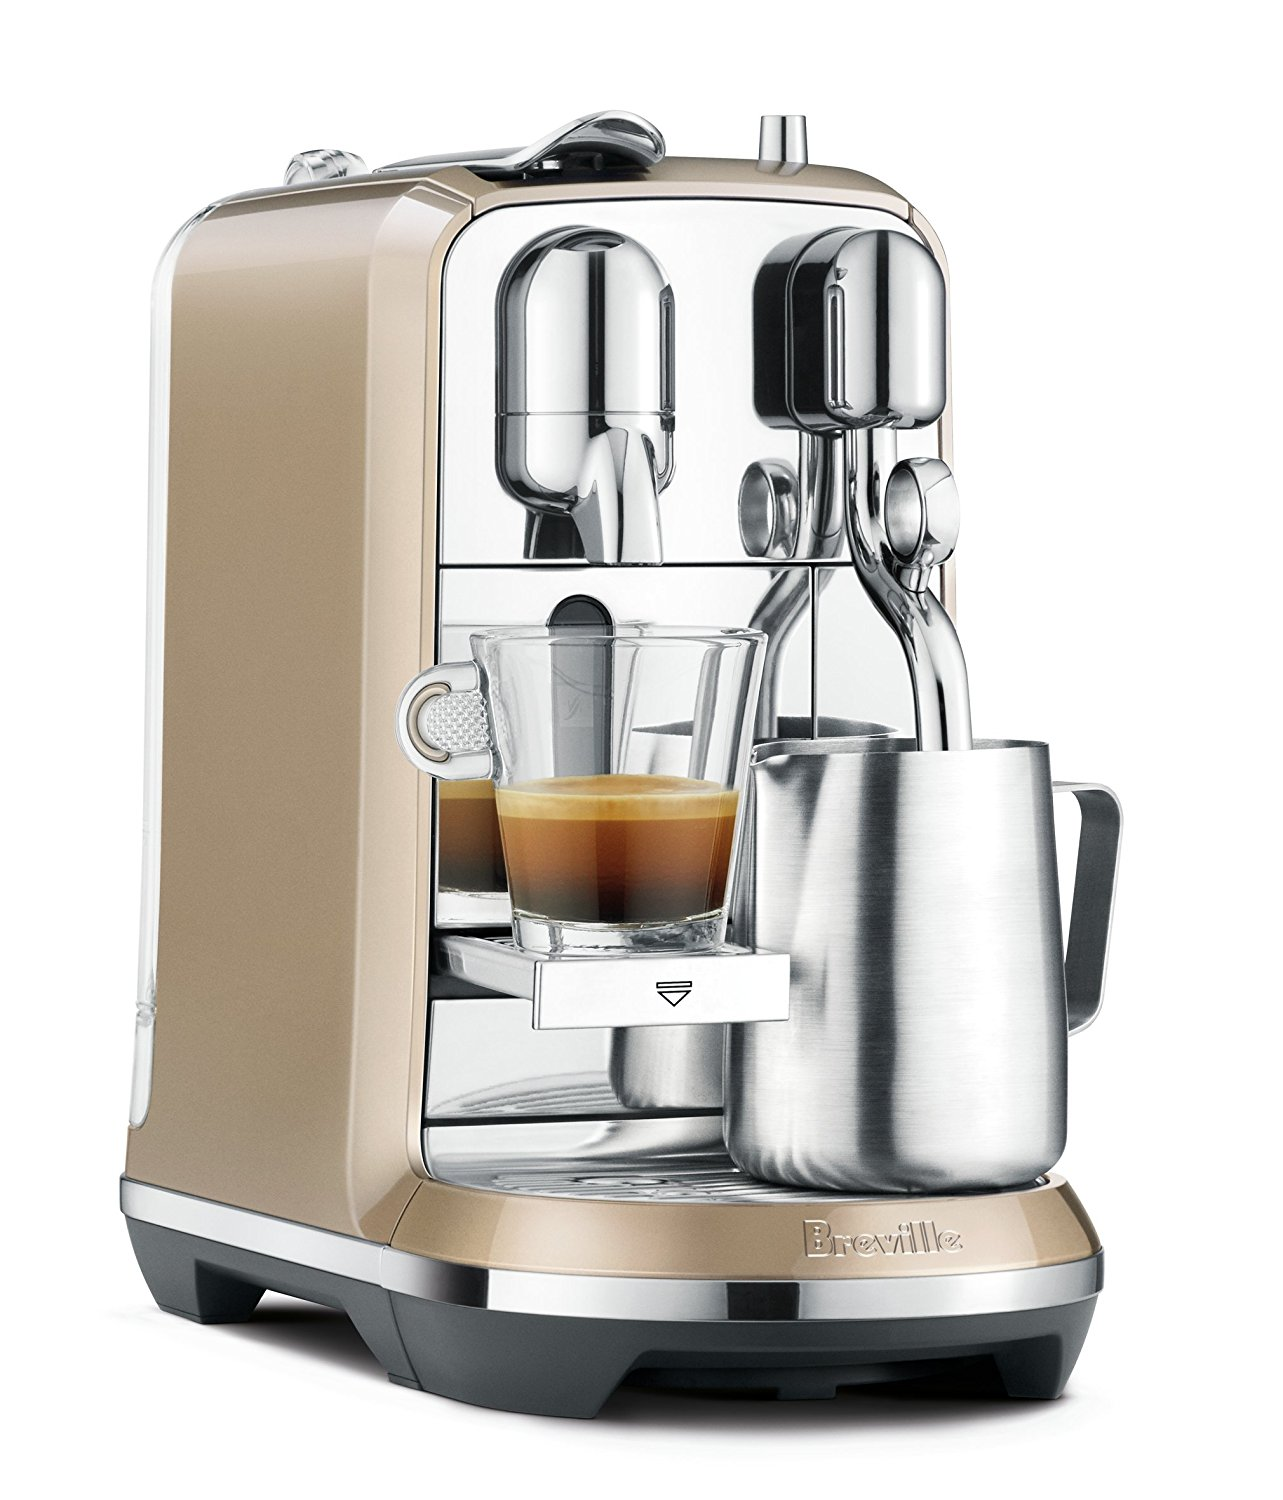 Breville Coffee Maker Coupons : Breville Nespresso Creatista Espresso and Coffee Maker Only USD 299.95 Shipped! (Dropped From USD 499 ...